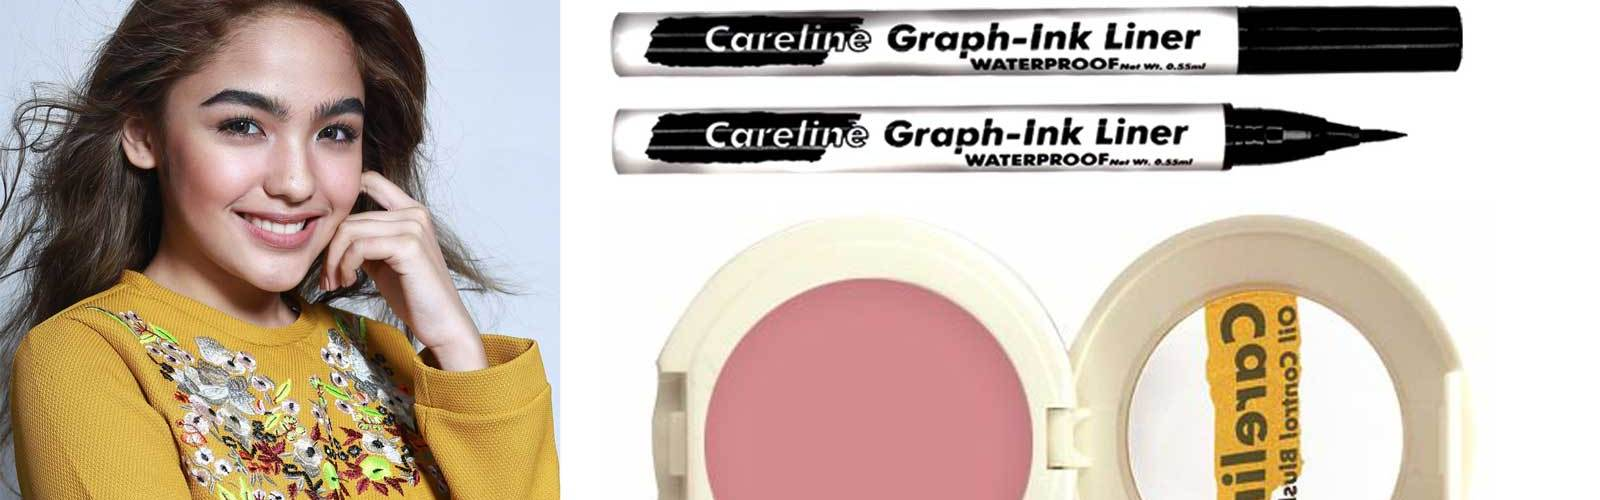 Ever Bilena Careline Graph-Ink Liner and Oil Control Blush-on